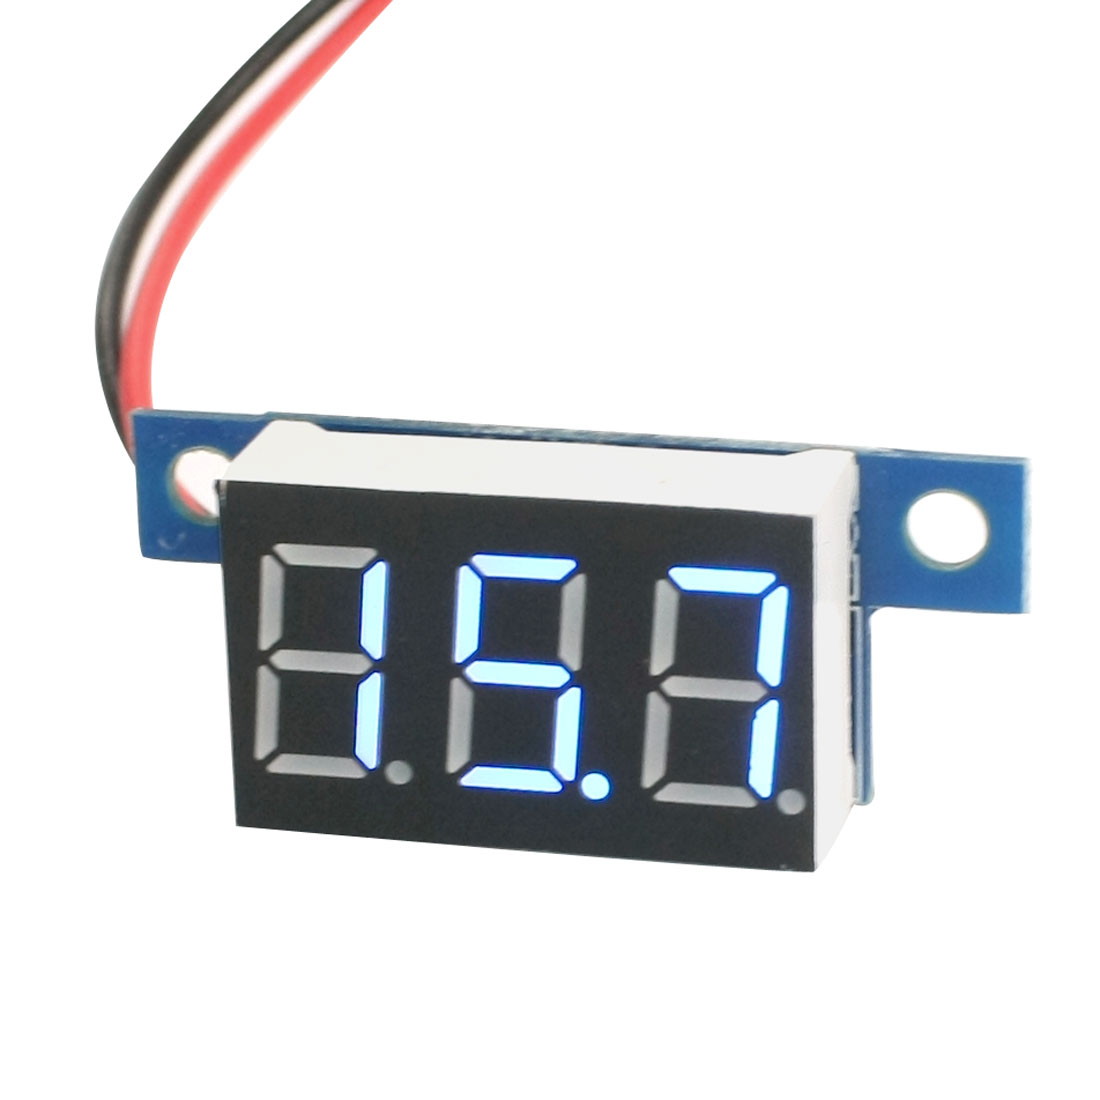 DC3-17V Blue LED Display Digital Voltmeter Panel Volt Meter Gauge